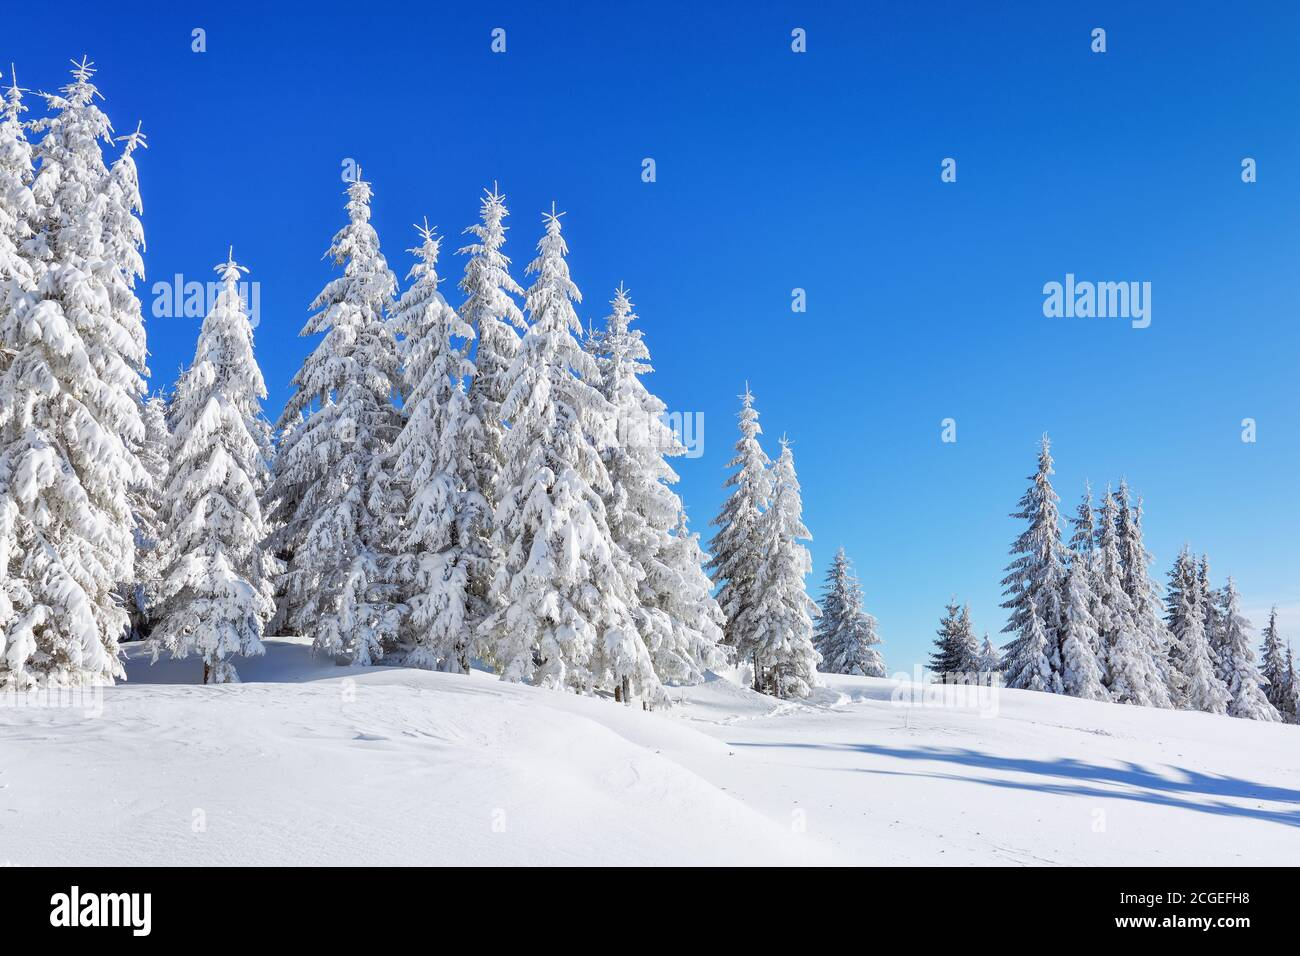 Winter scenery. Natural landscape with beautiful sky. Amazing On the lawn covered with snow the nice trees are standing poured with snowflakes. Touris Stock Photo